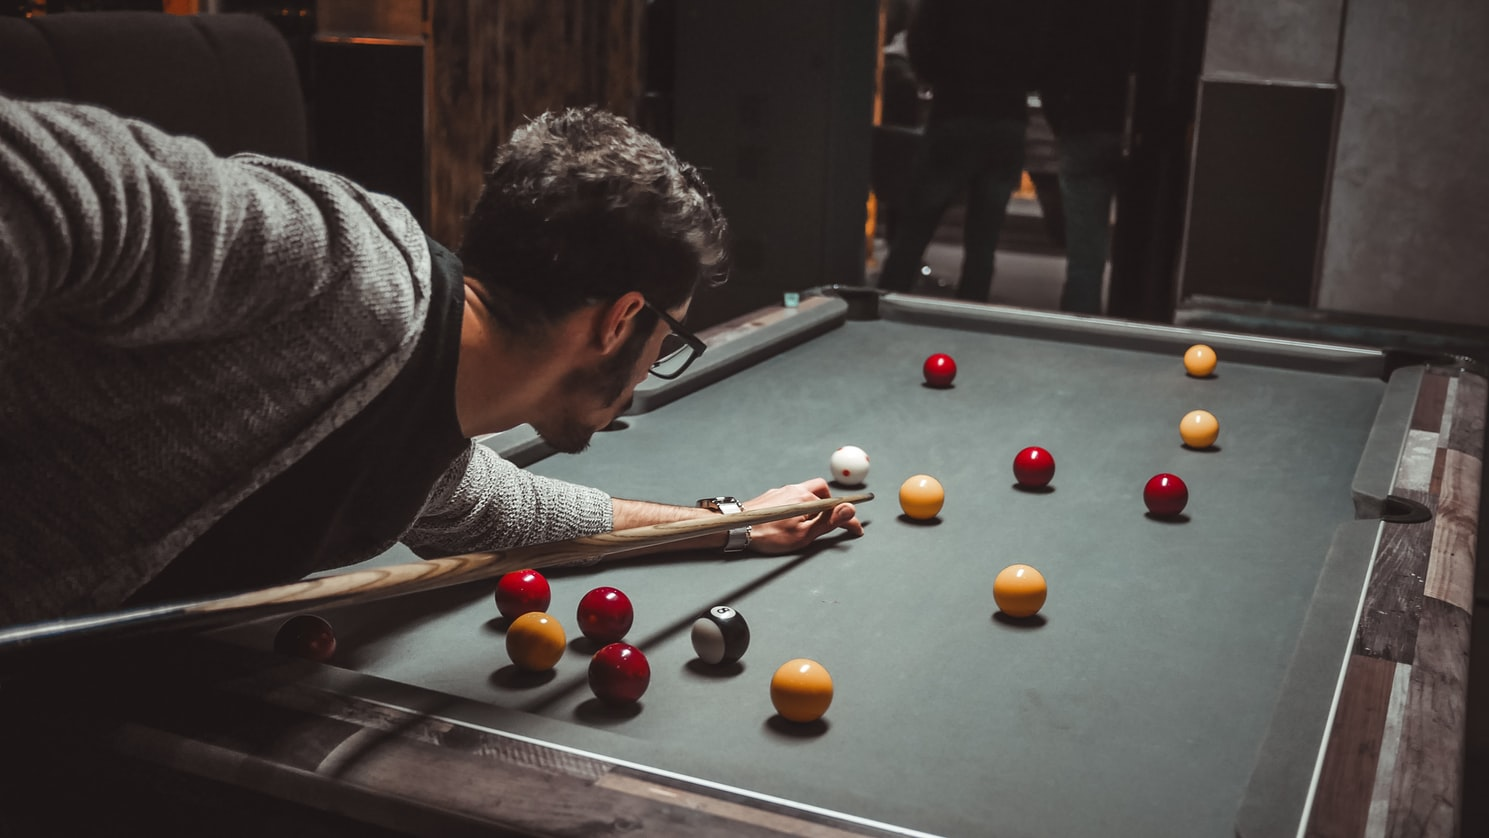 Man in gray sweater playing billiards